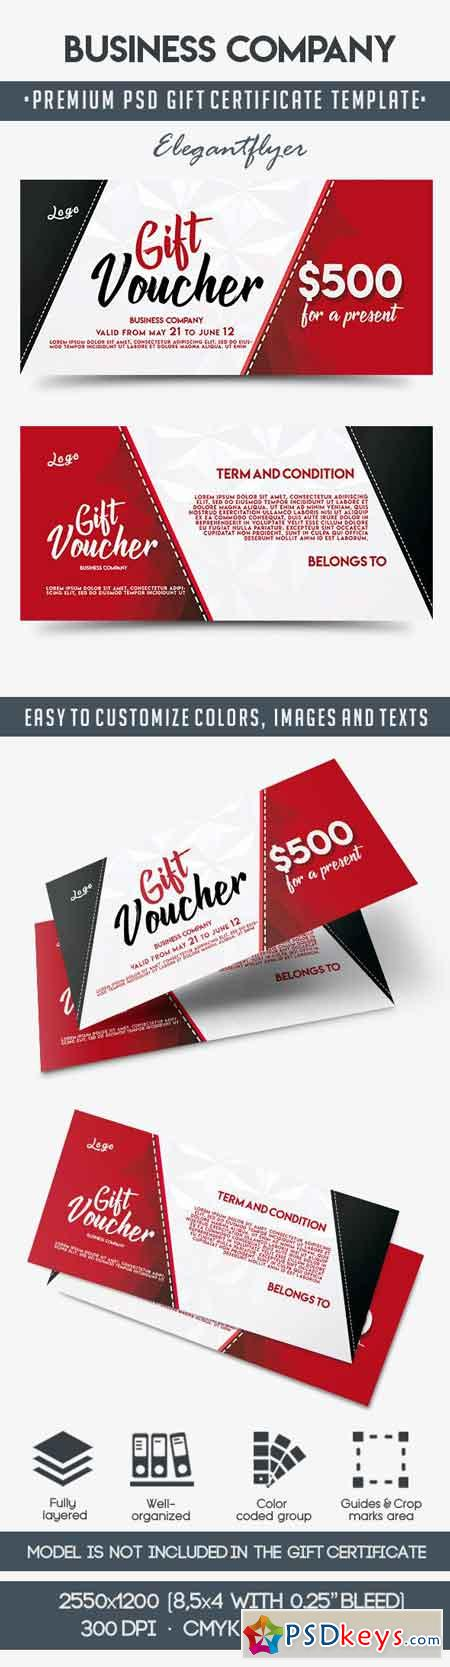 Business Company Gift Certificate Template